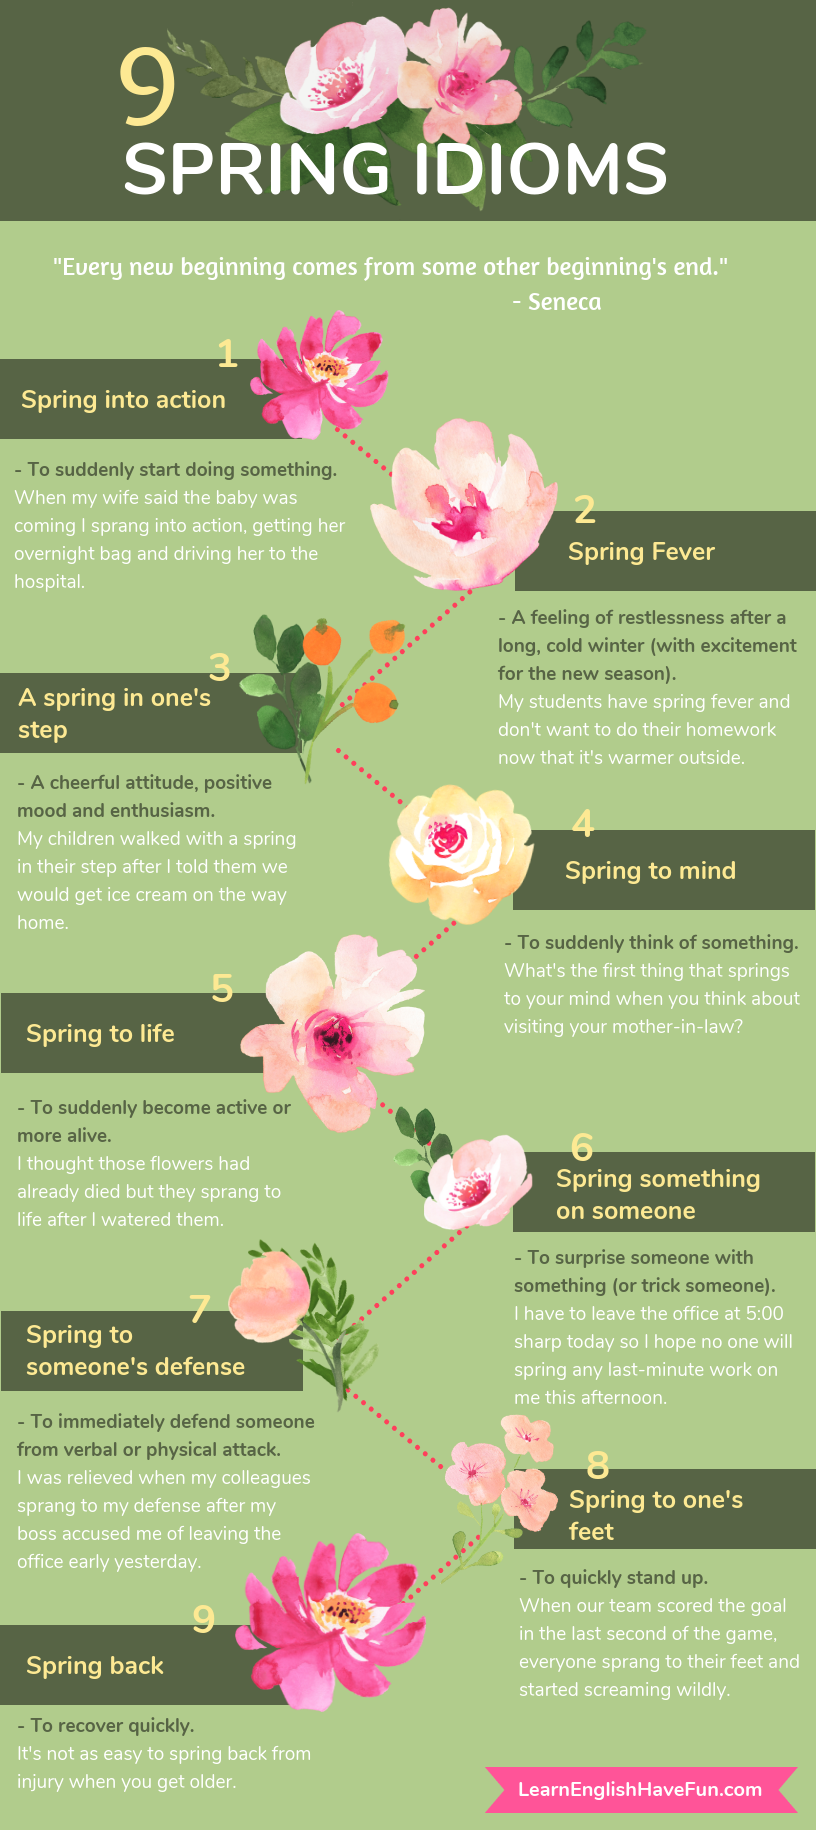 9 spring idioms with examples